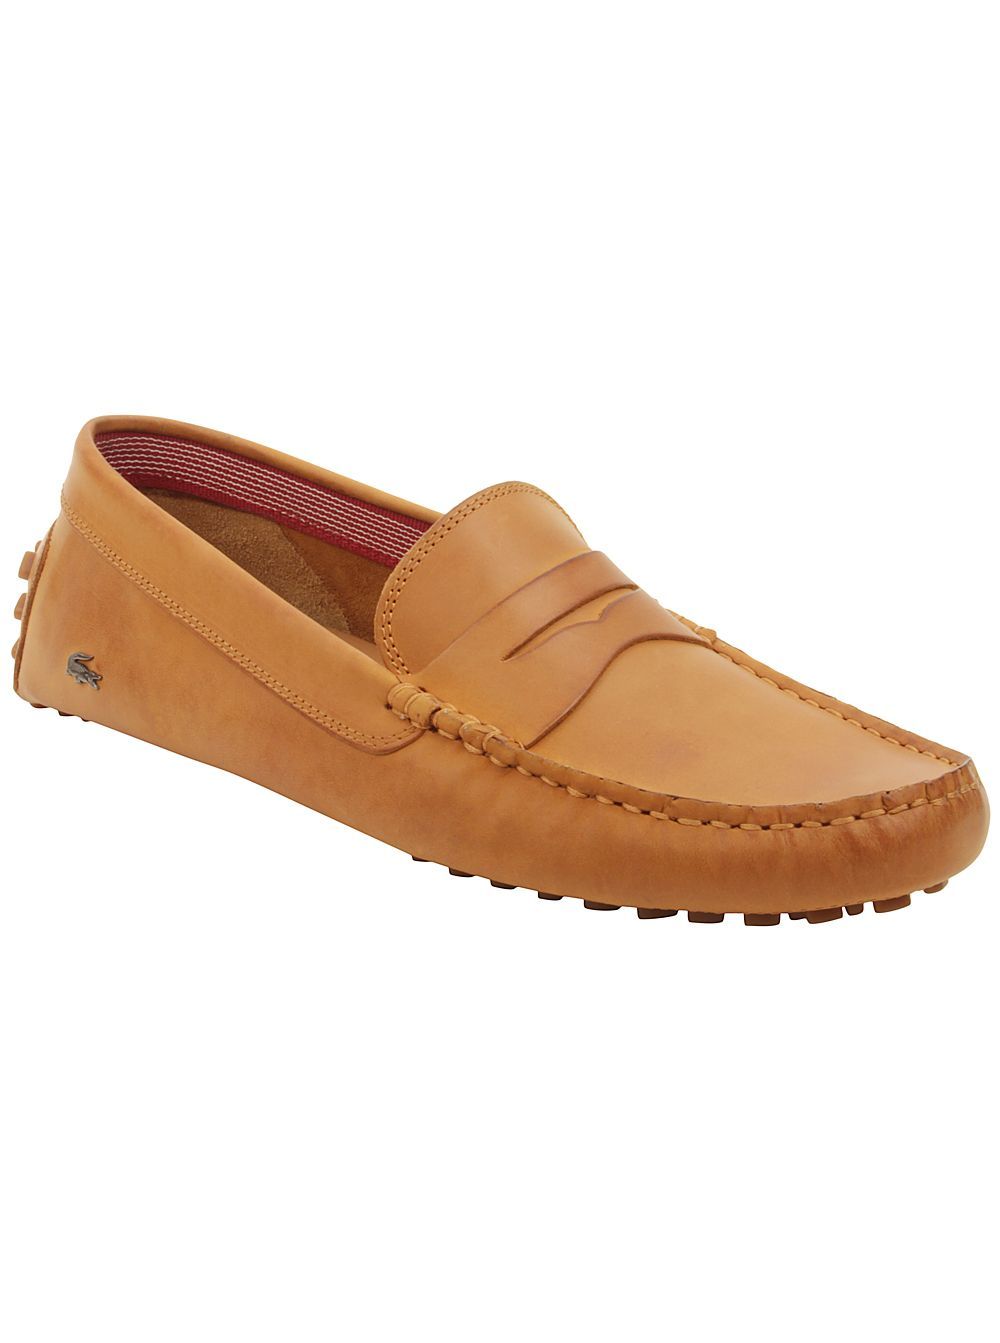 Lacoste Mens Concours 16 Loafers in Tan